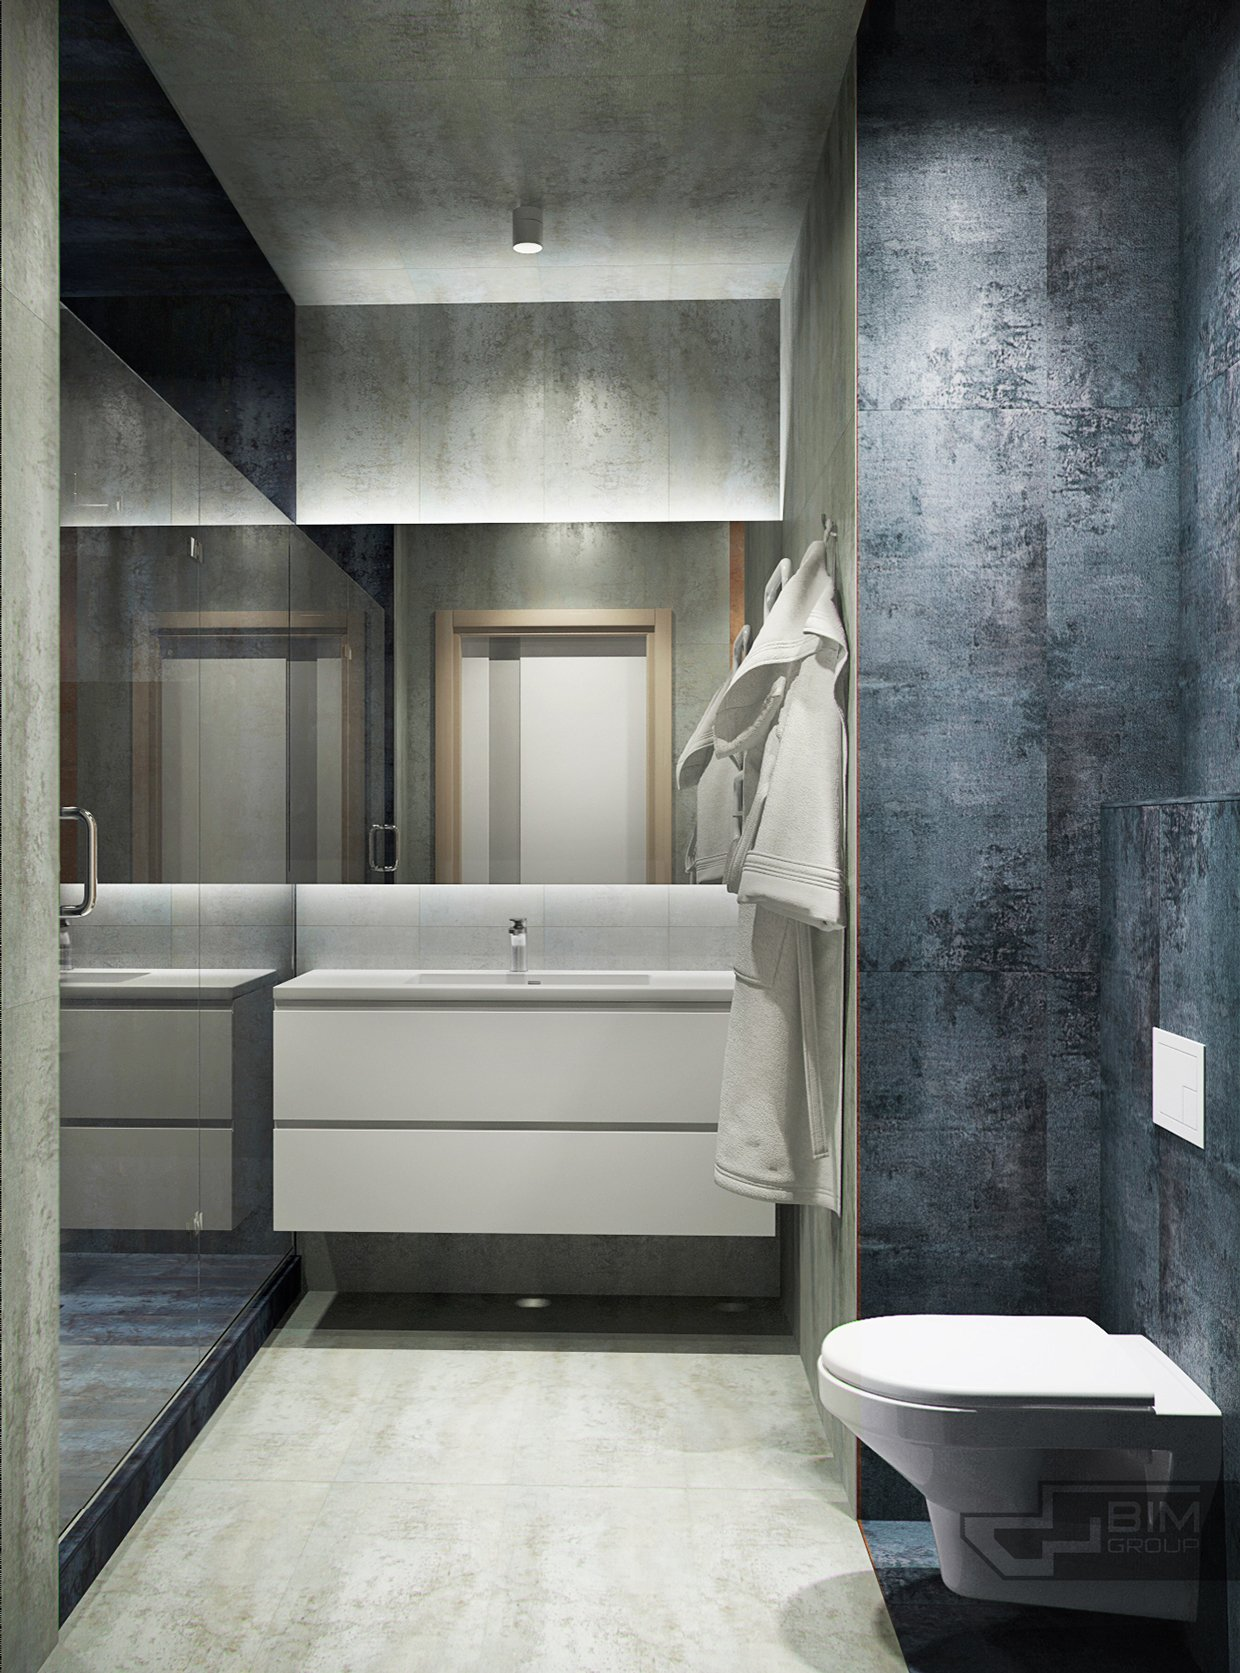 Manly Bathroom Remodel: Sophisticated Kiev Home Makes Creative Use Of Natural